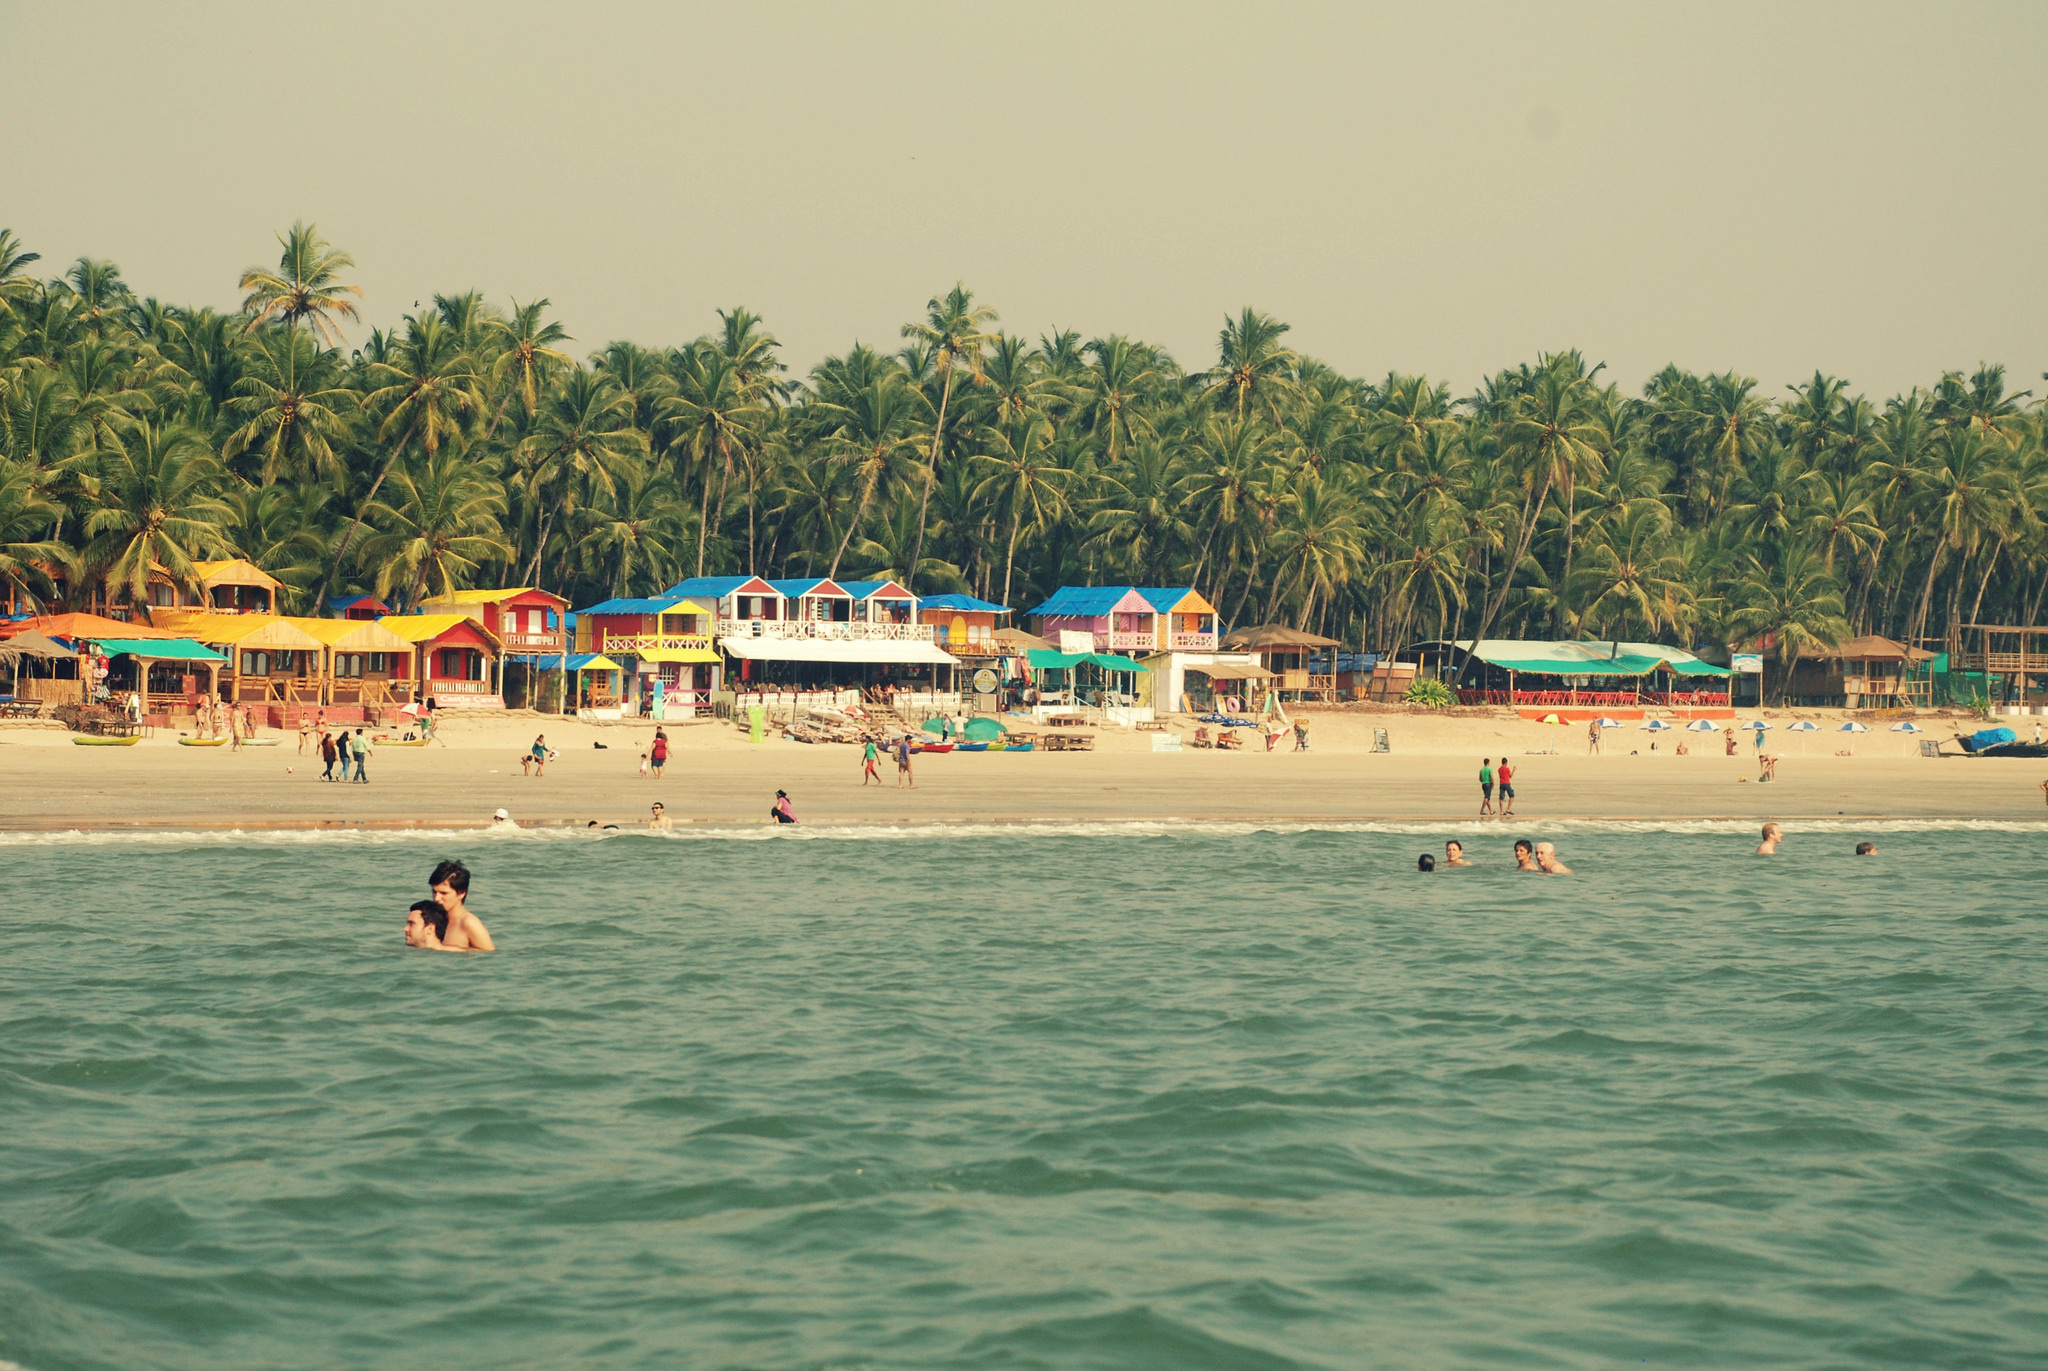 Postcard perfect Palolem beach © Flickr/Mathanki Kodavasal